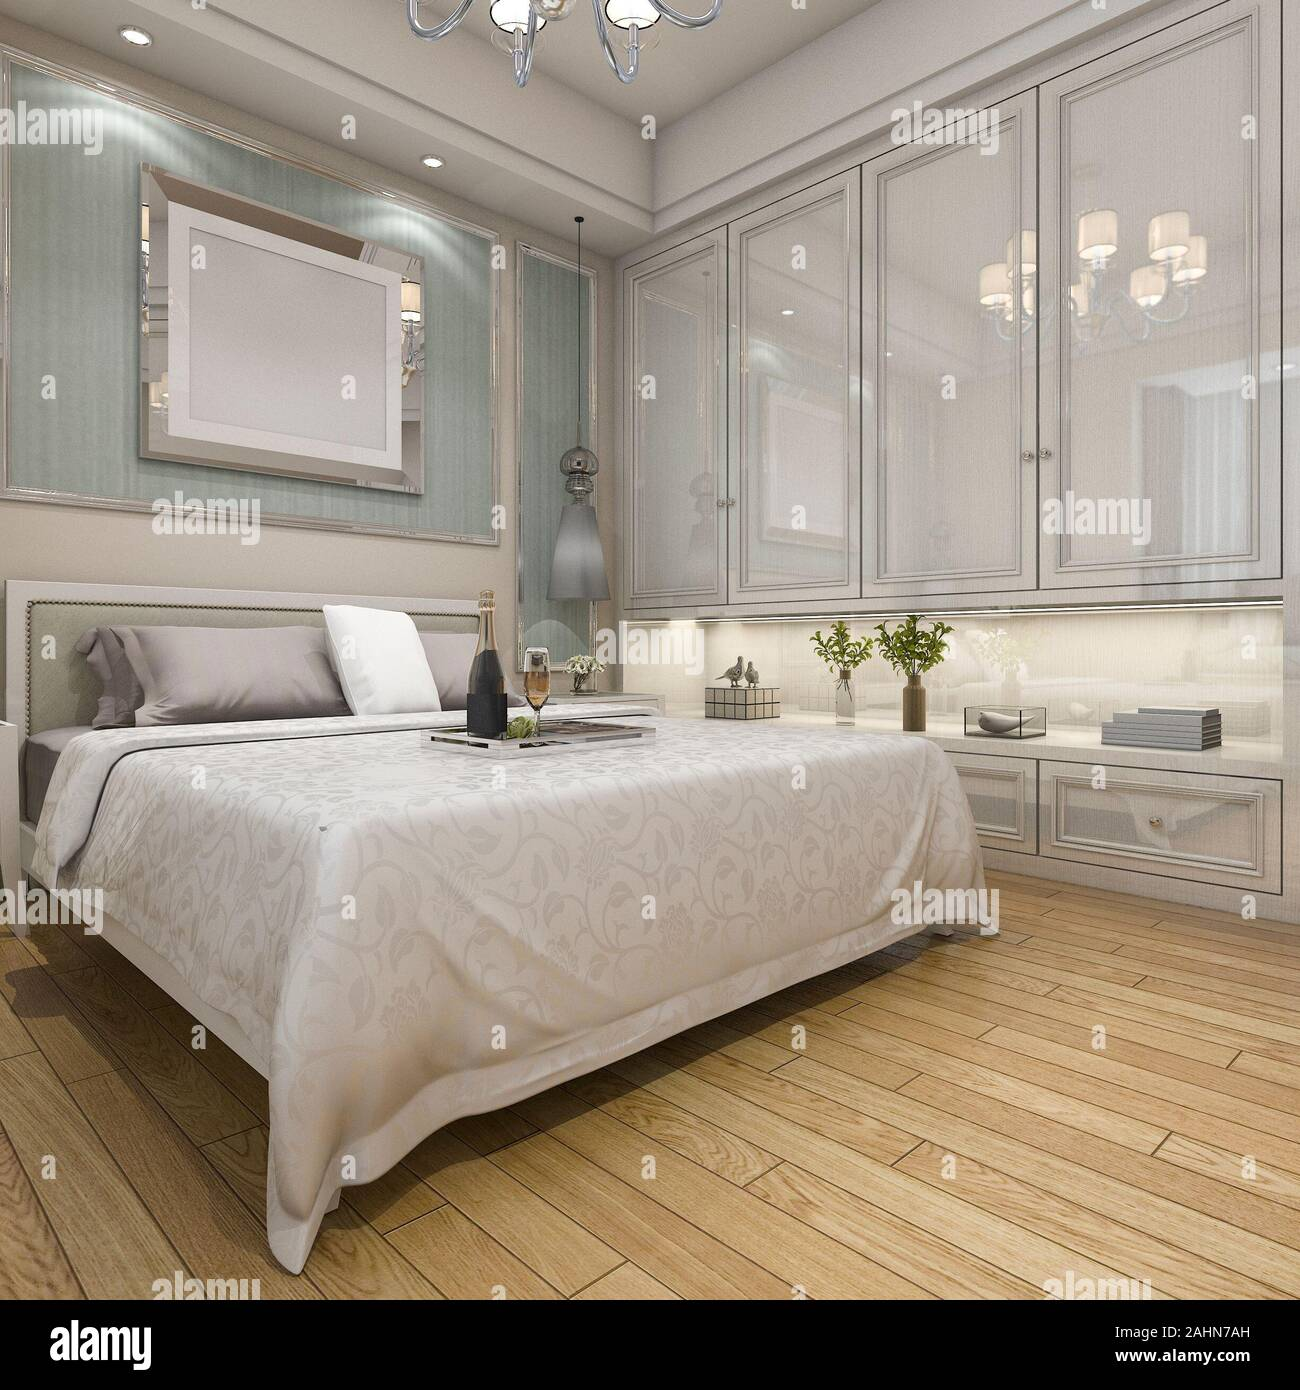 3d Rendering Modern Luxury Classic Bedroom With Wood Floor And White Decor Stock Photo Alamy